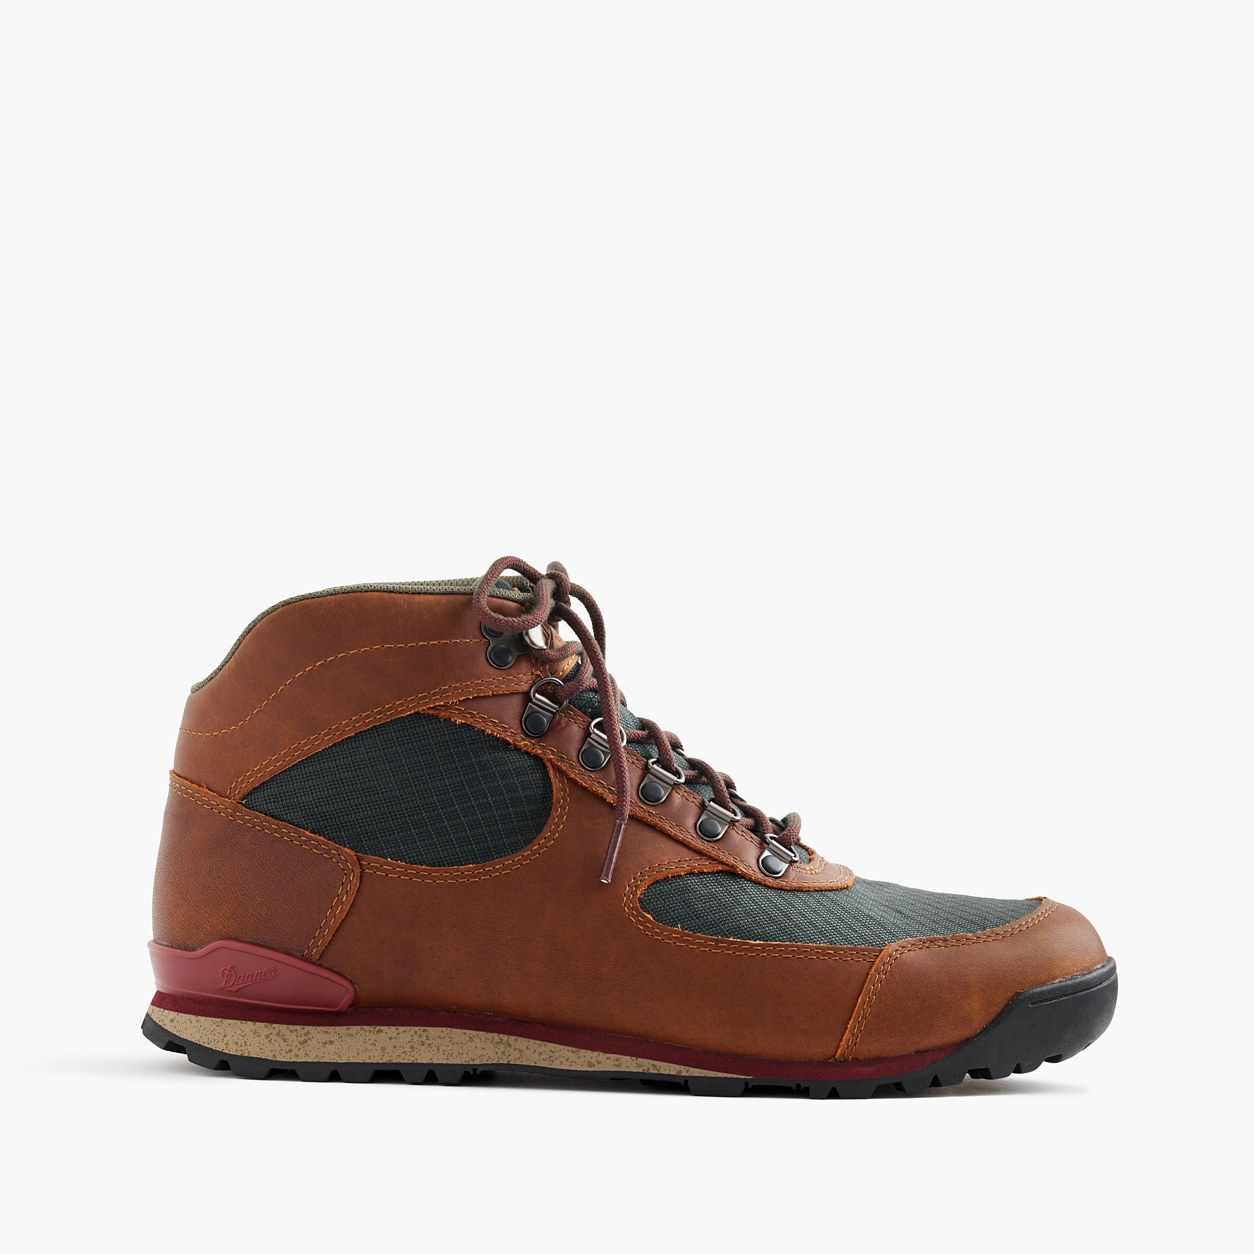 J Crew Mens Danner Jag Boots (Size 10 5 M) | Products